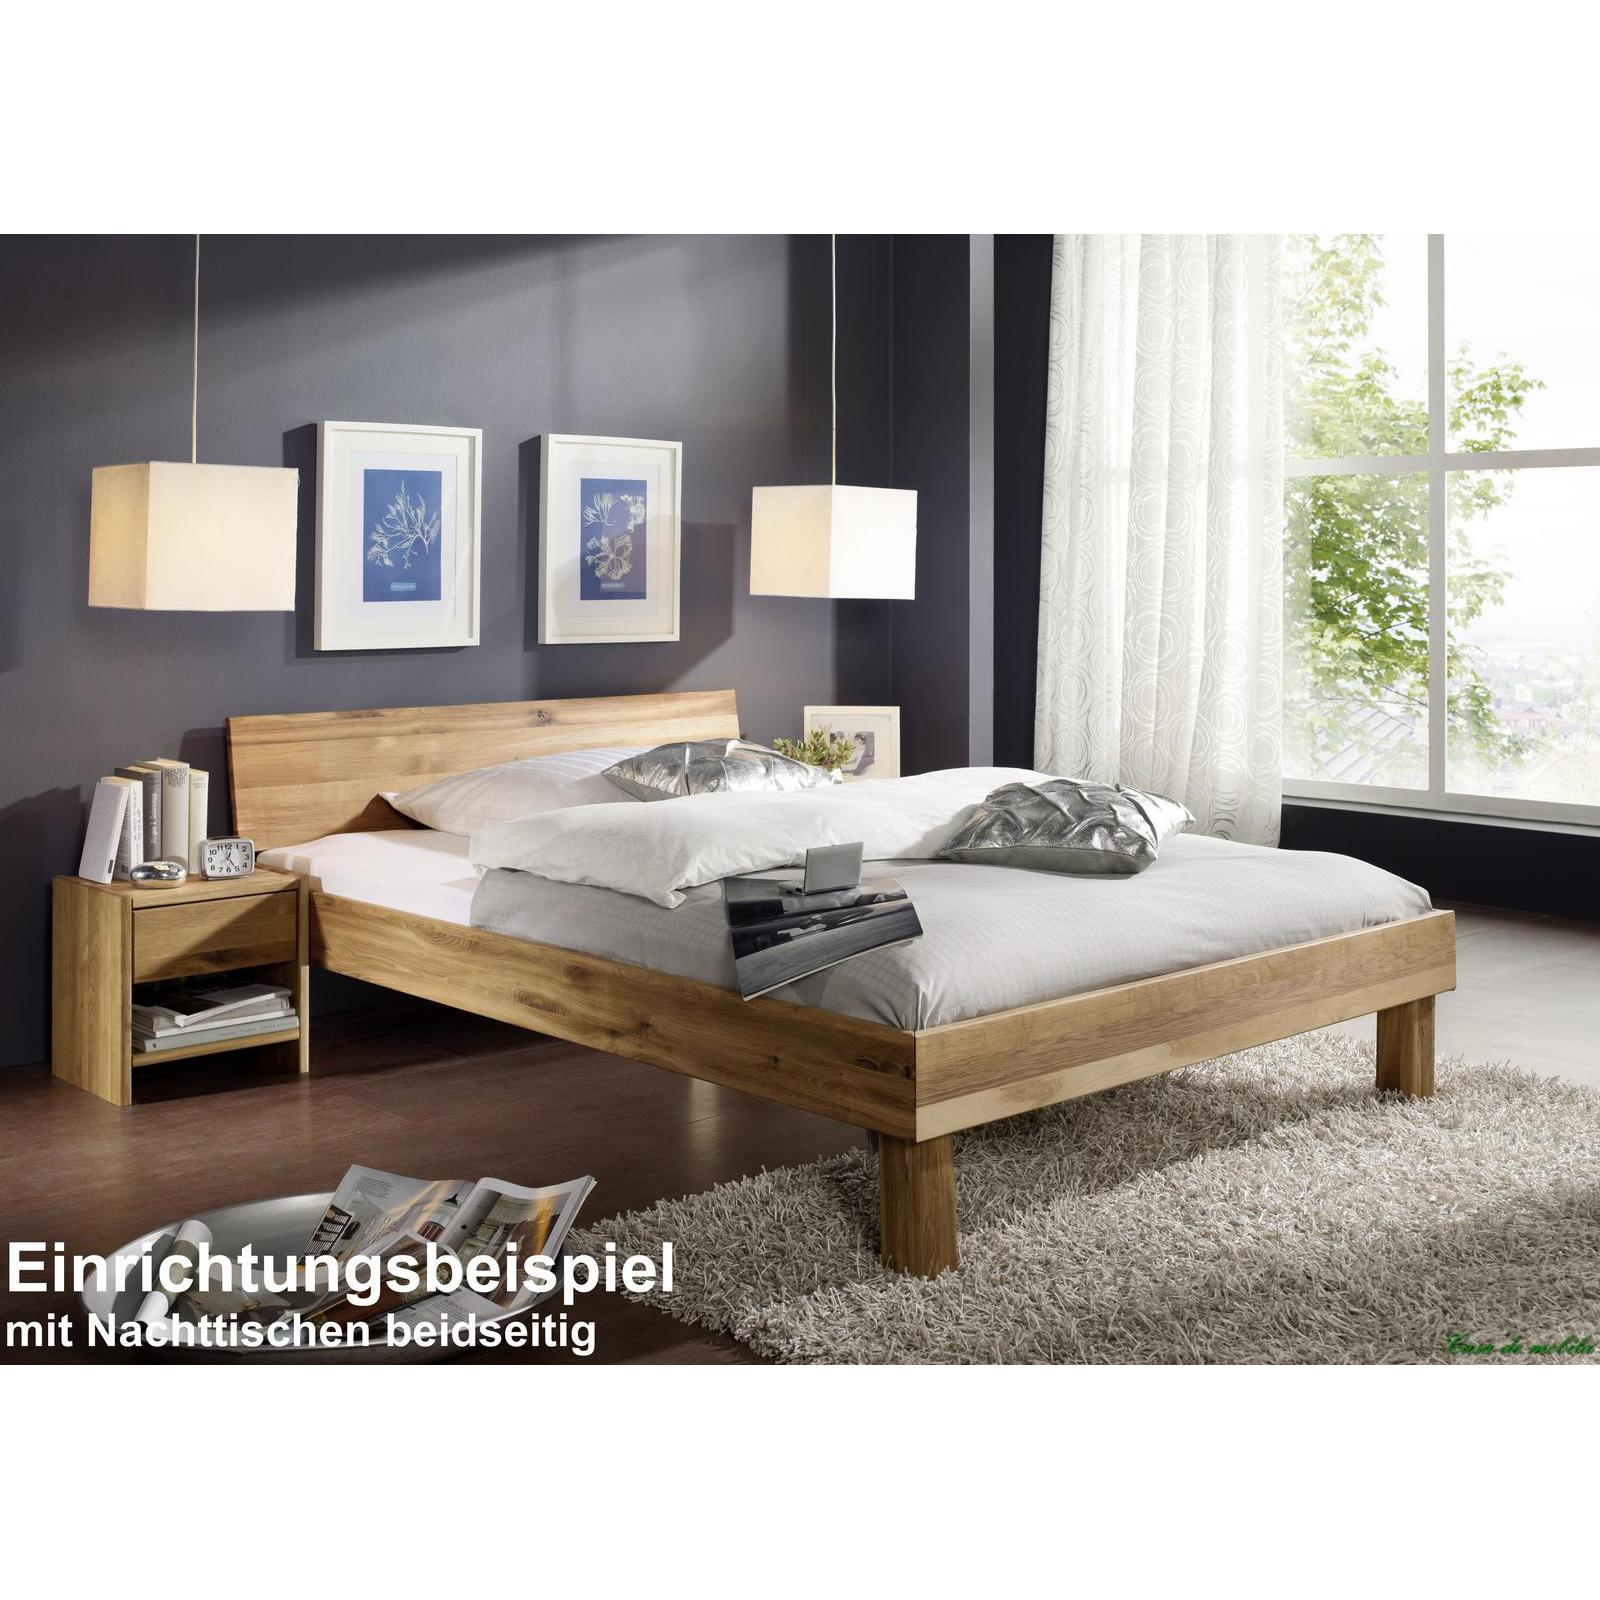 massivholz einzelbett mit schubladen wildeiche massiv. Black Bedroom Furniture Sets. Home Design Ideas